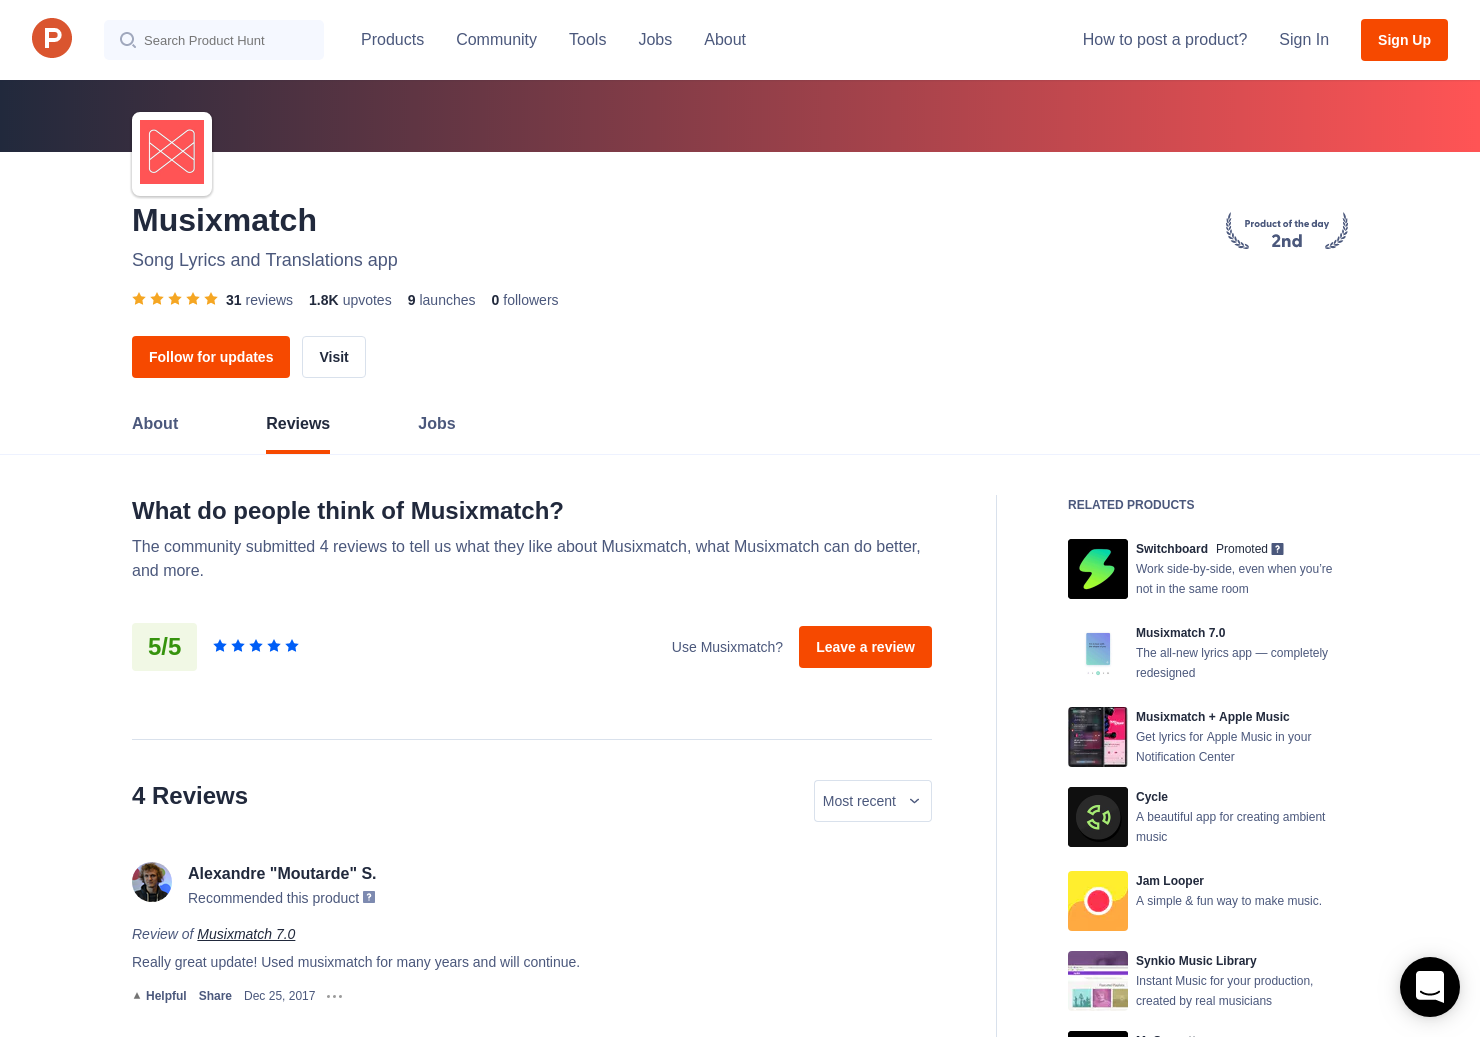 25 Musixmatch 7 0 Reviews - Pros, Cons and Rating   Product Hunt